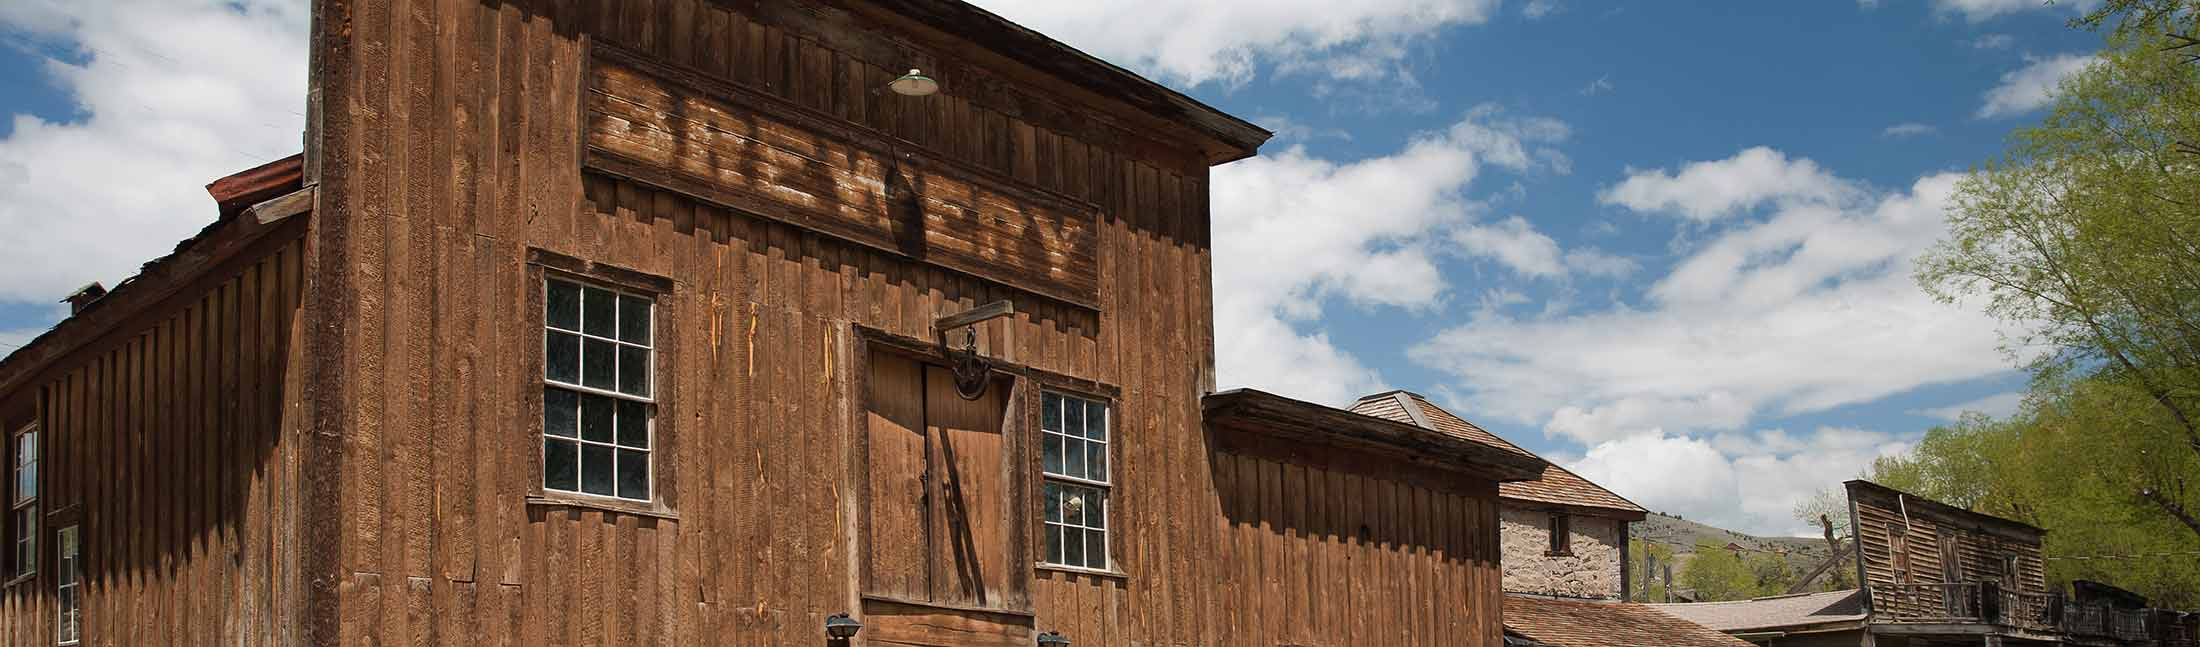 Ghost Towns in Missoula, Montana